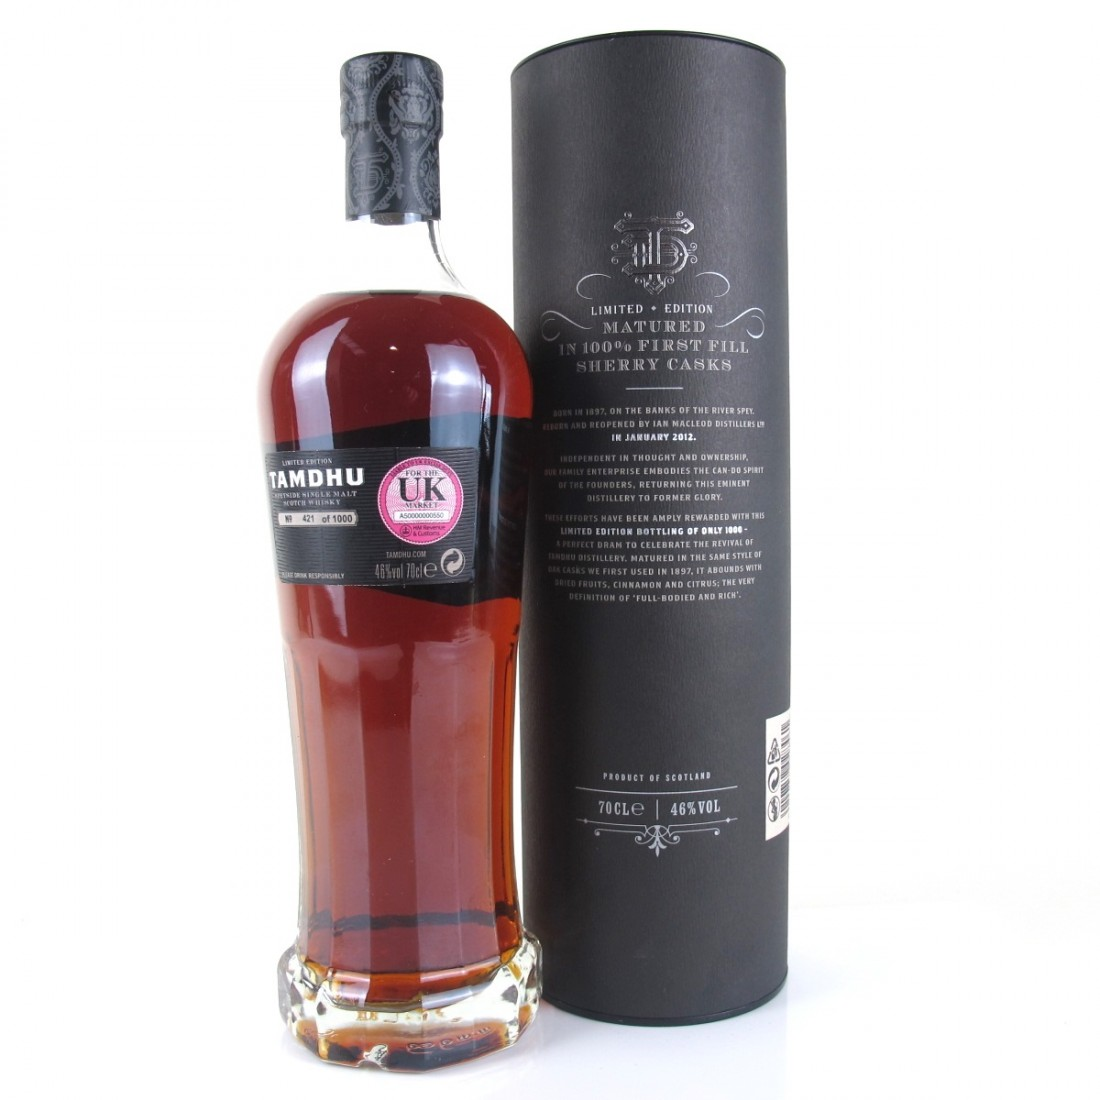 Tamdhu 10 Year Old Limited Edition / First Fill Sherry